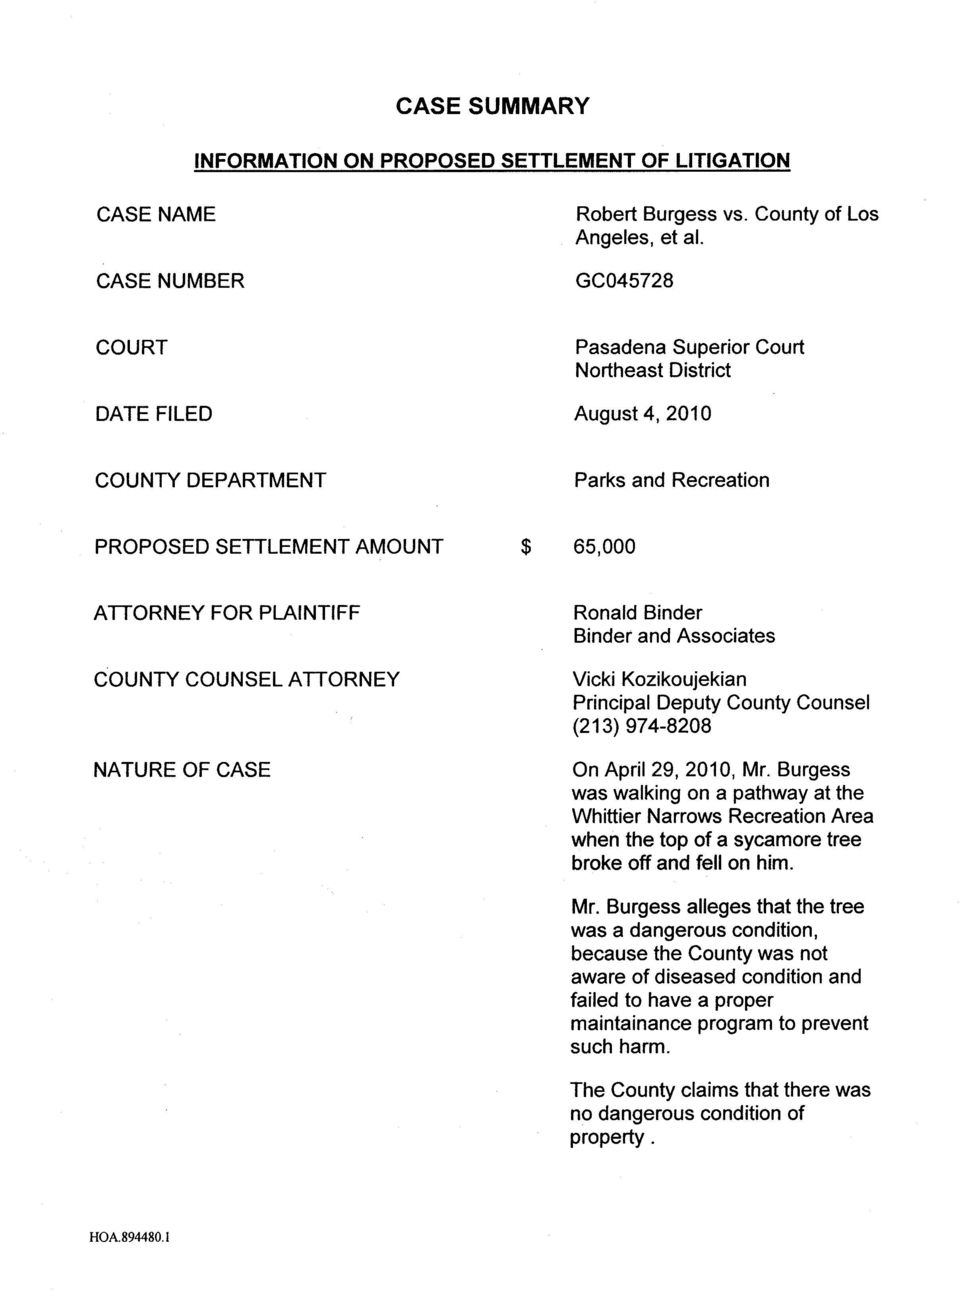 ATTORNEY NATURE OF CASE Ronald Binder Binder and Associates Vicki Kozikoujekian Principal Deputy County Counsel (213) 974-8208 On April 29, 2010, Mr.